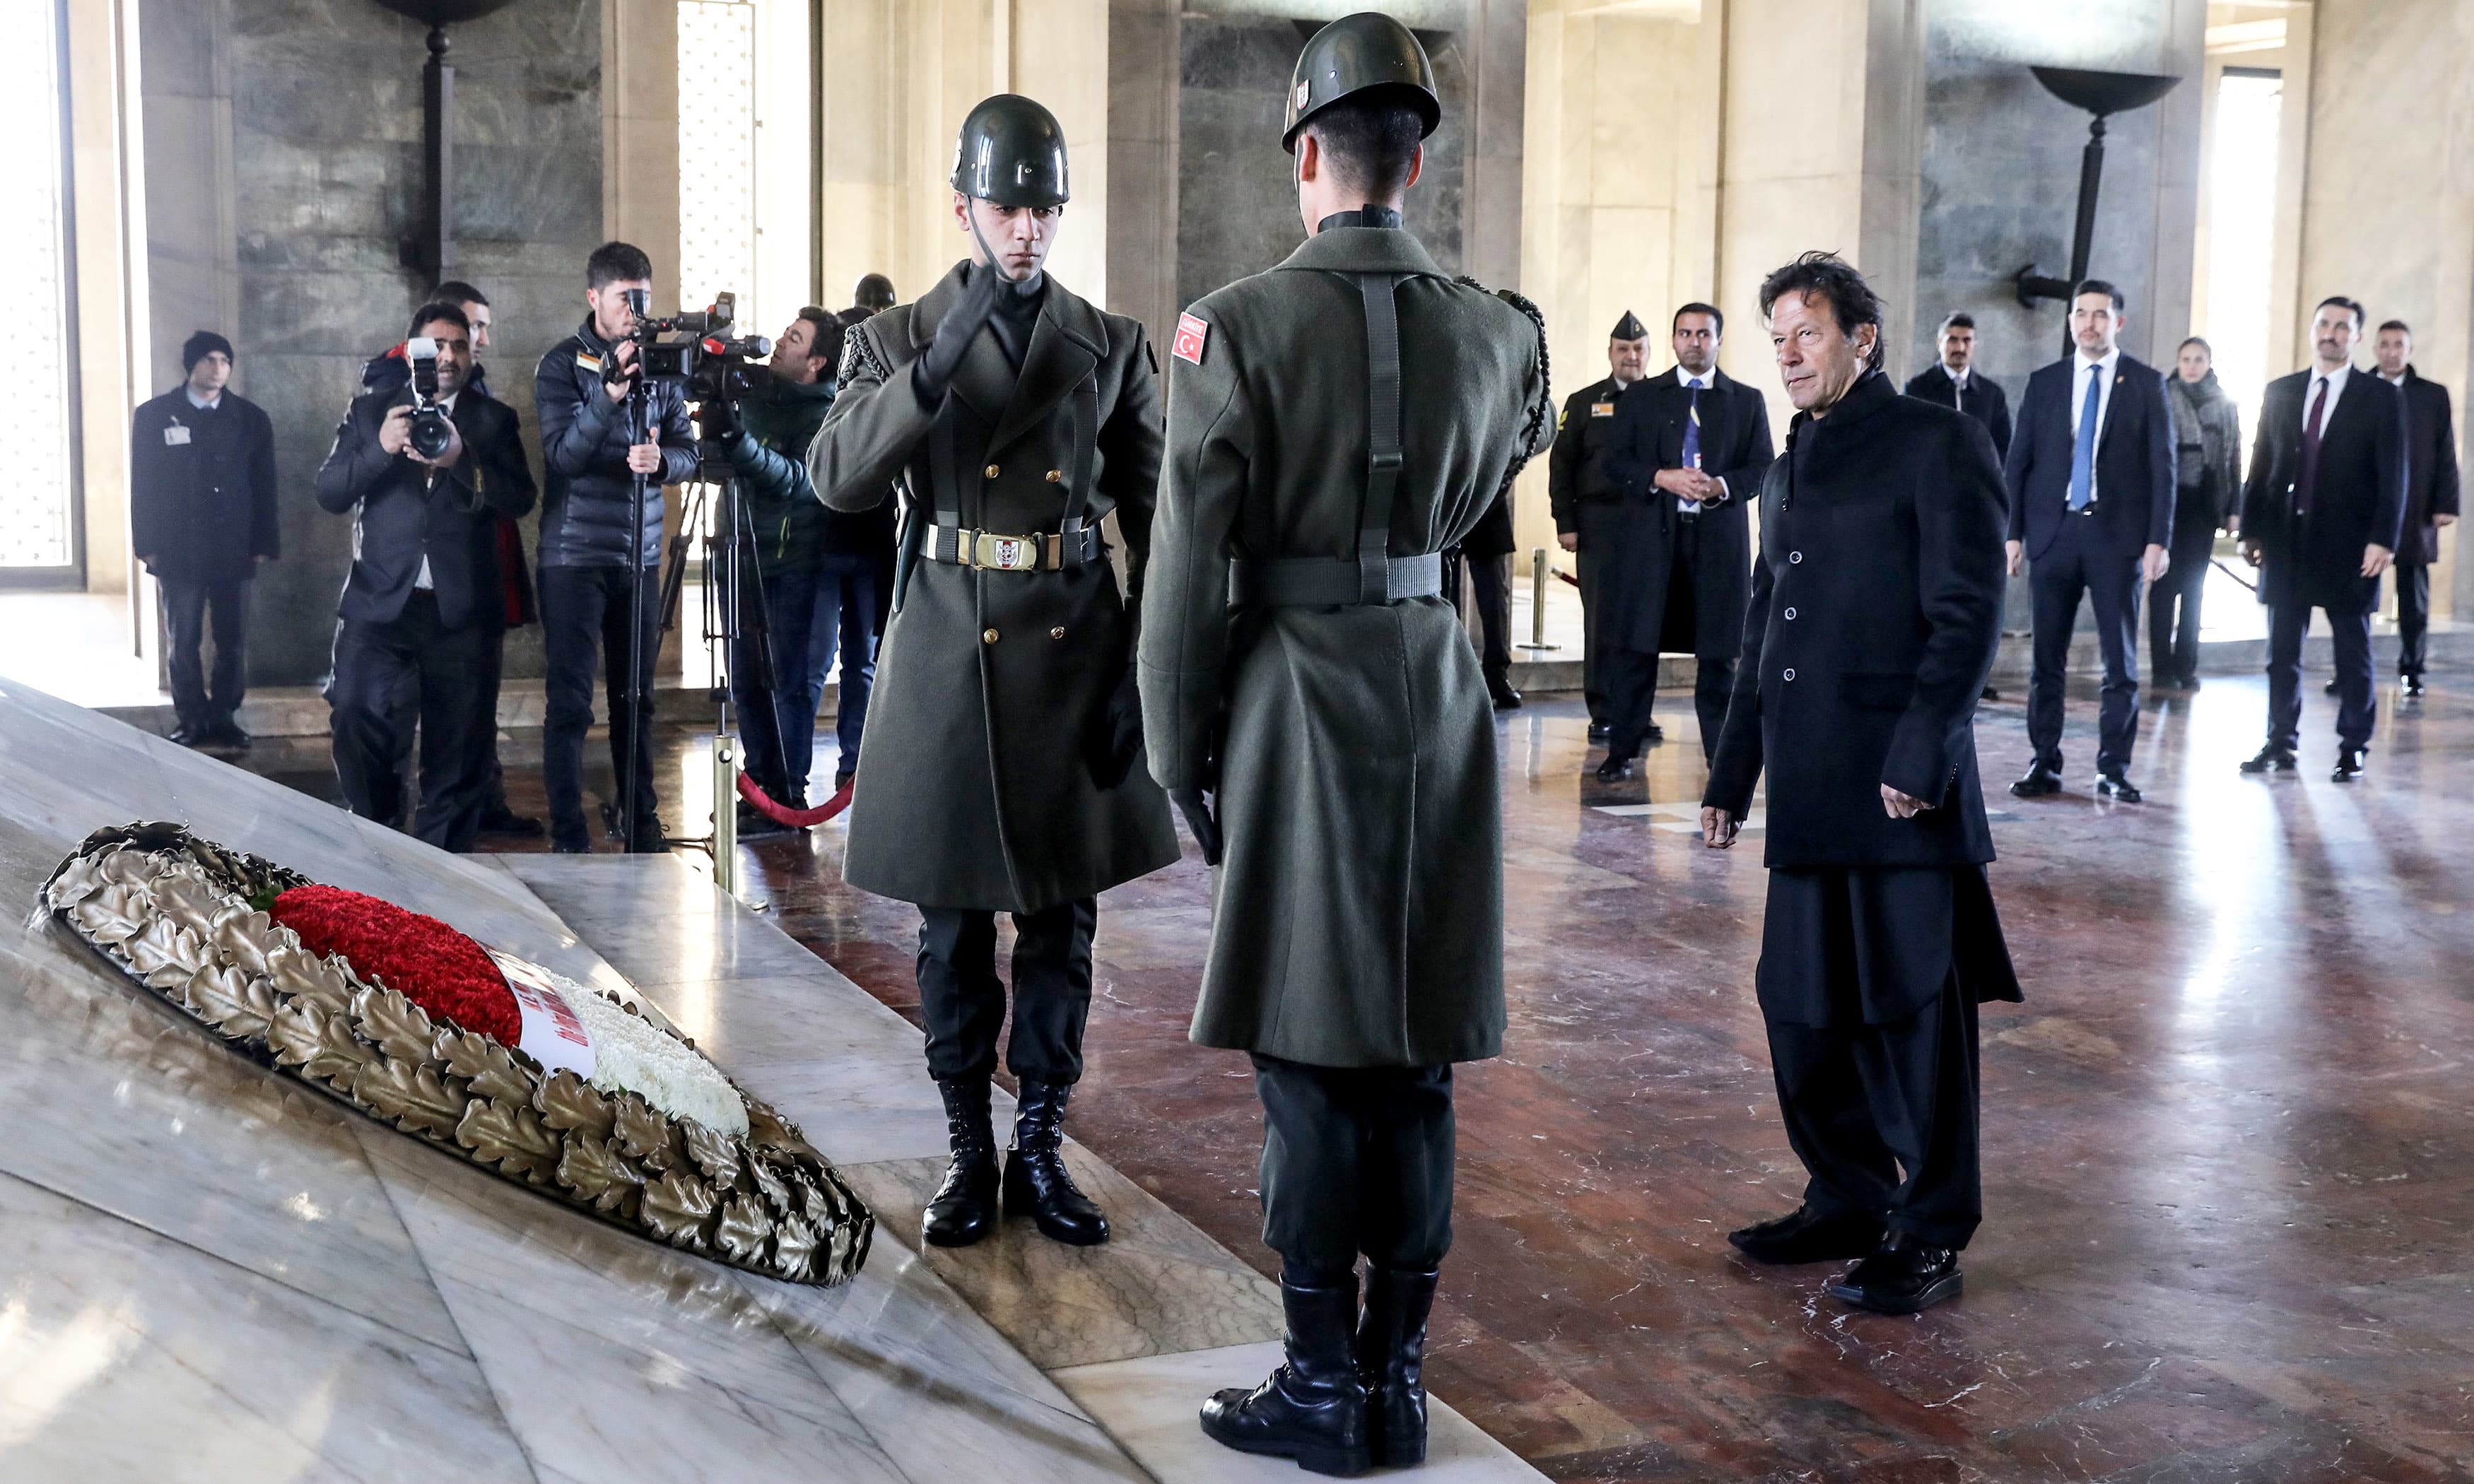 PM Imran Khan attends a wreath-laying ceremony in Anitkabir, the mausoleum of Turkish Republic's founder Mustafa Kemal Ataturk, as part of an official state visit in Ankara. —AFP